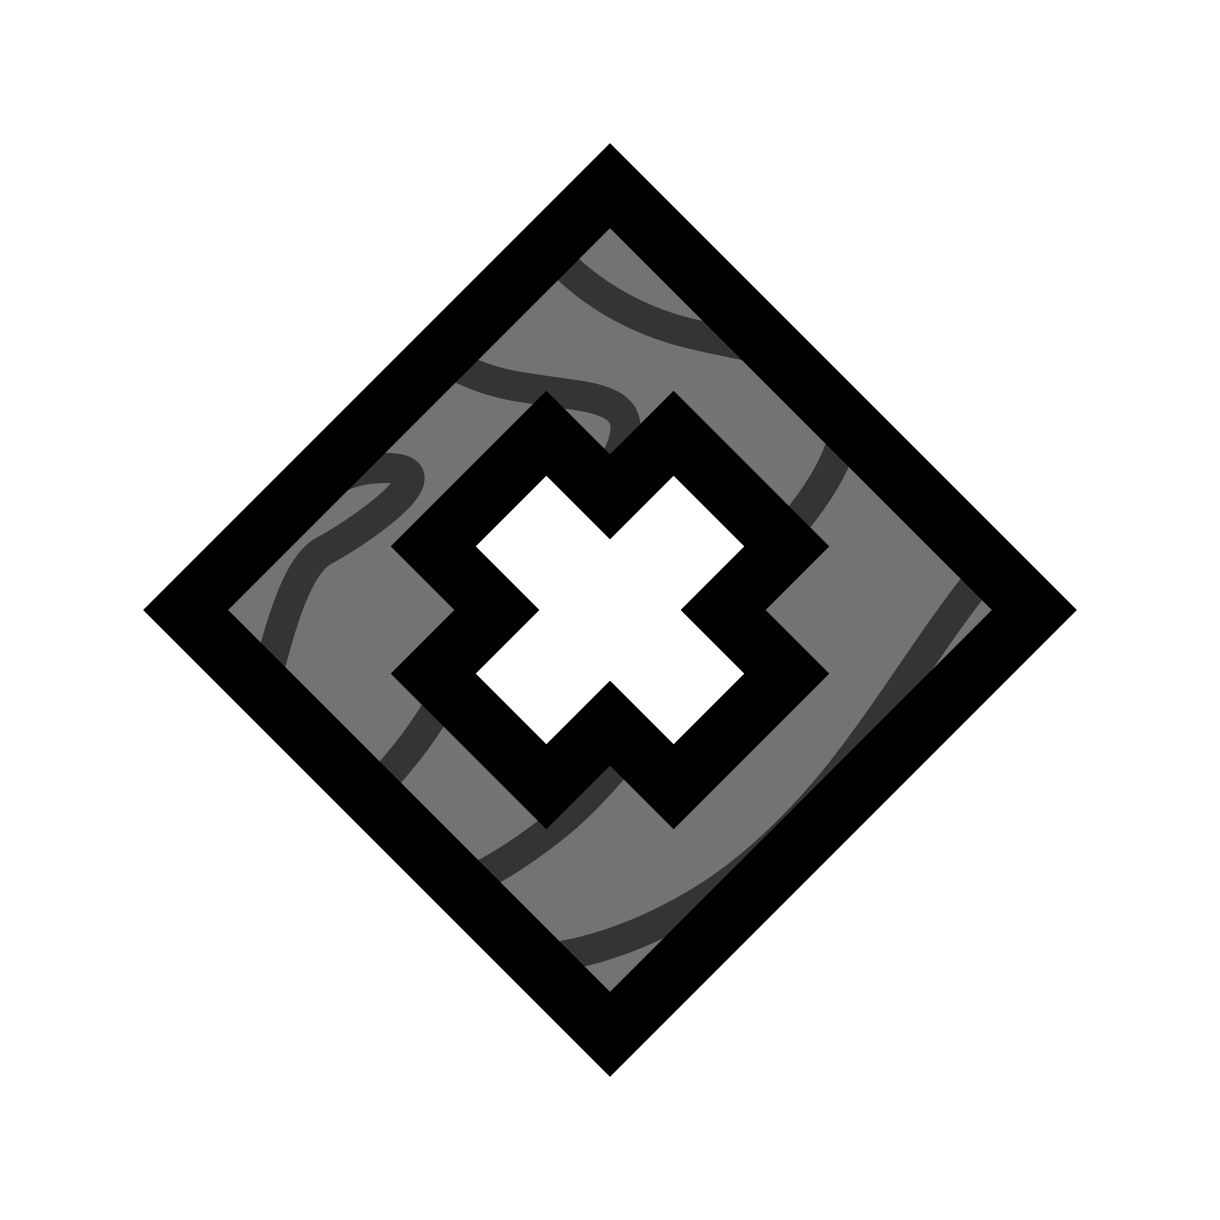 atlas_icon_adblocker-01